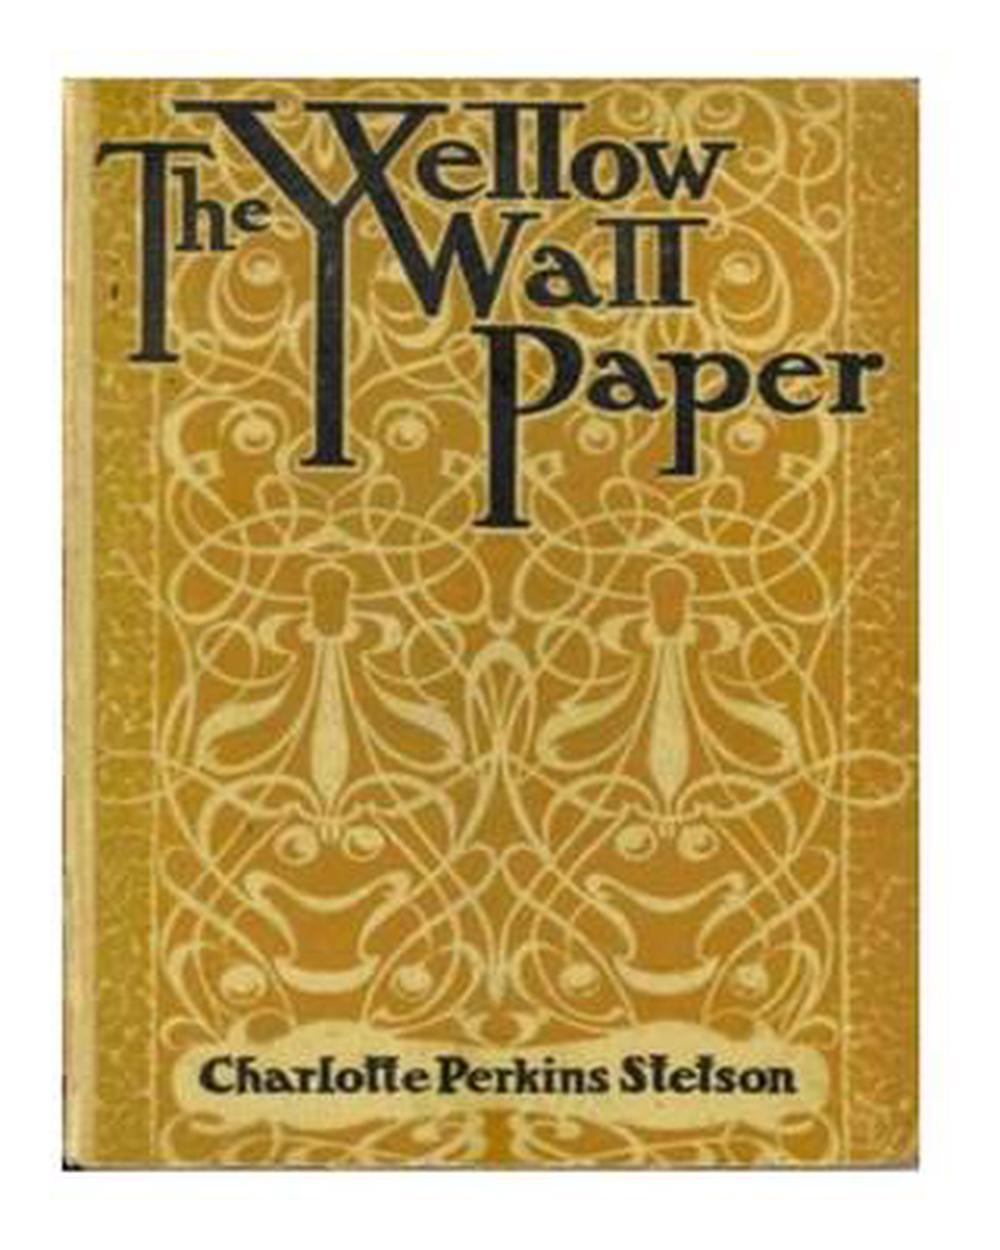 Details About The Yellow Wallpaper By Charlotte Perkins Gilman English Paperback Book Free S